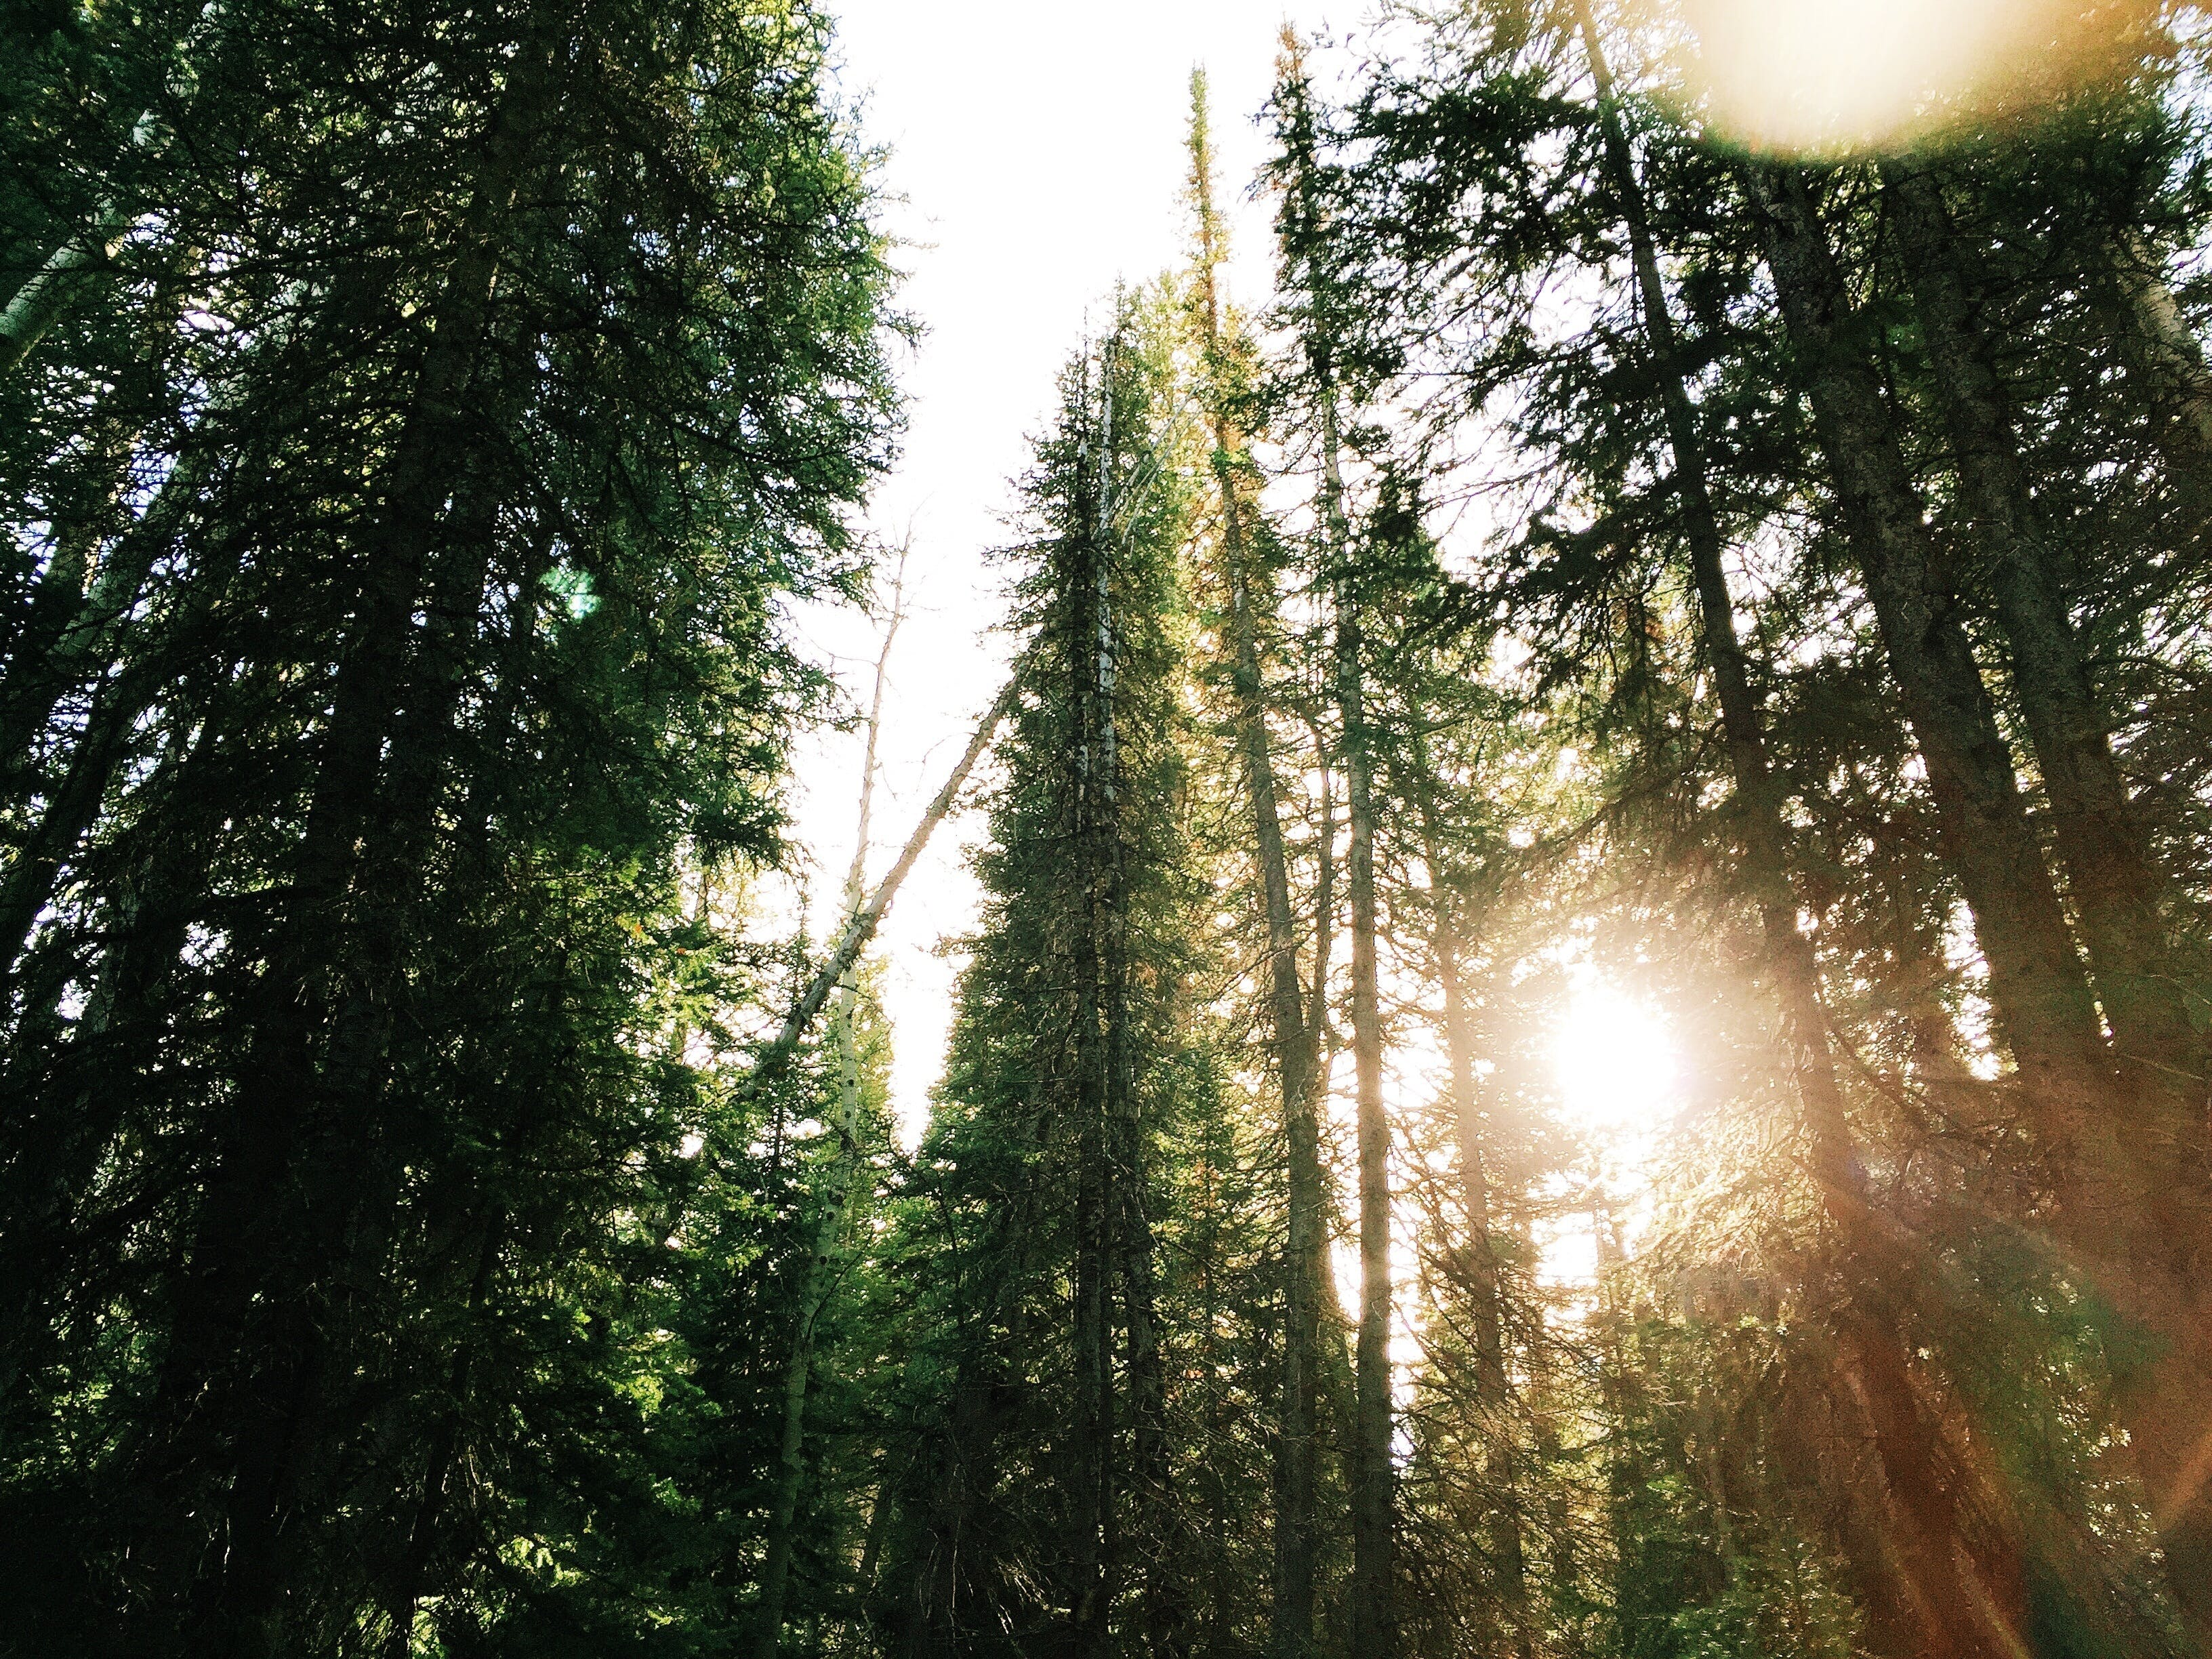 Free stock photo of nature, forest, conifers, fir trees